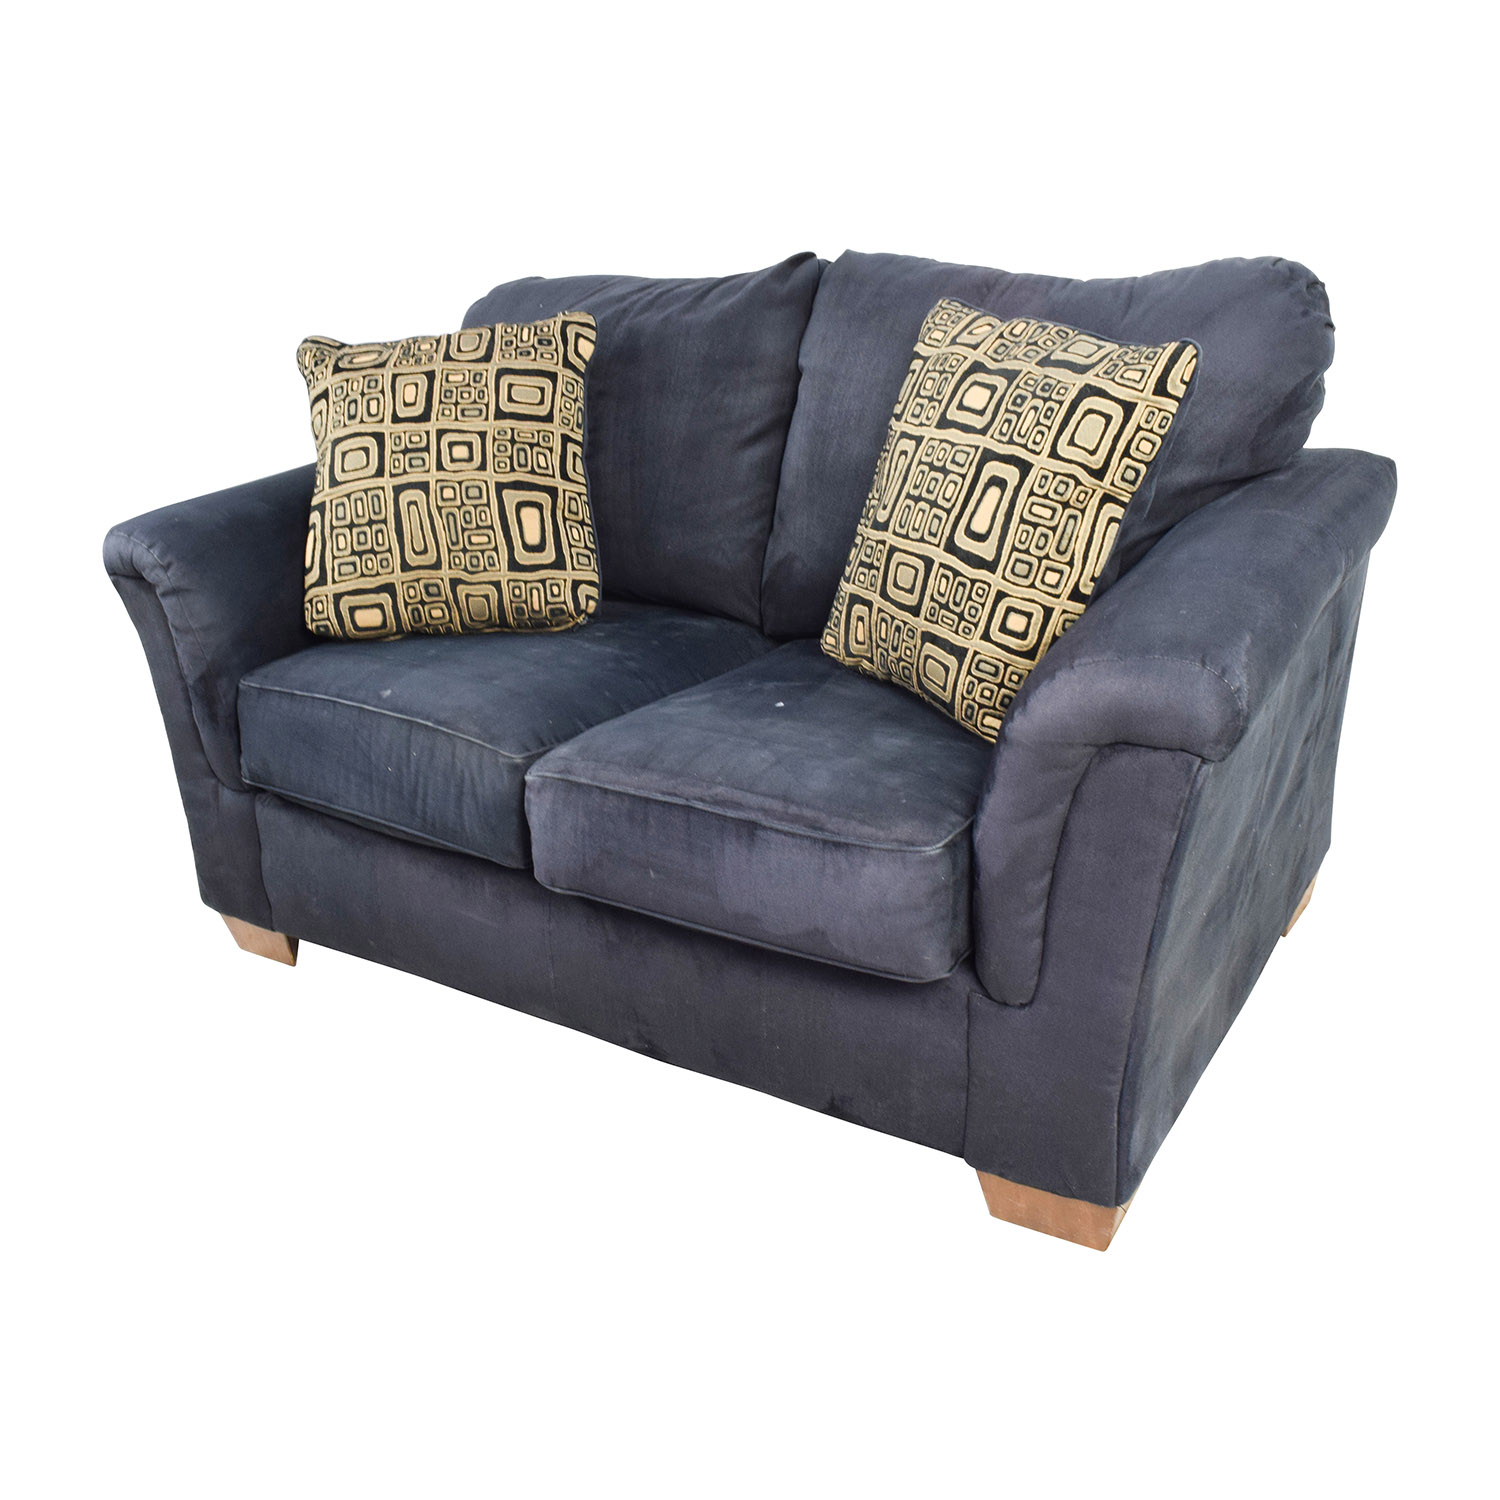 ... Ashley Furniture Ashley Furniture Janley Loveseat Sofas ...